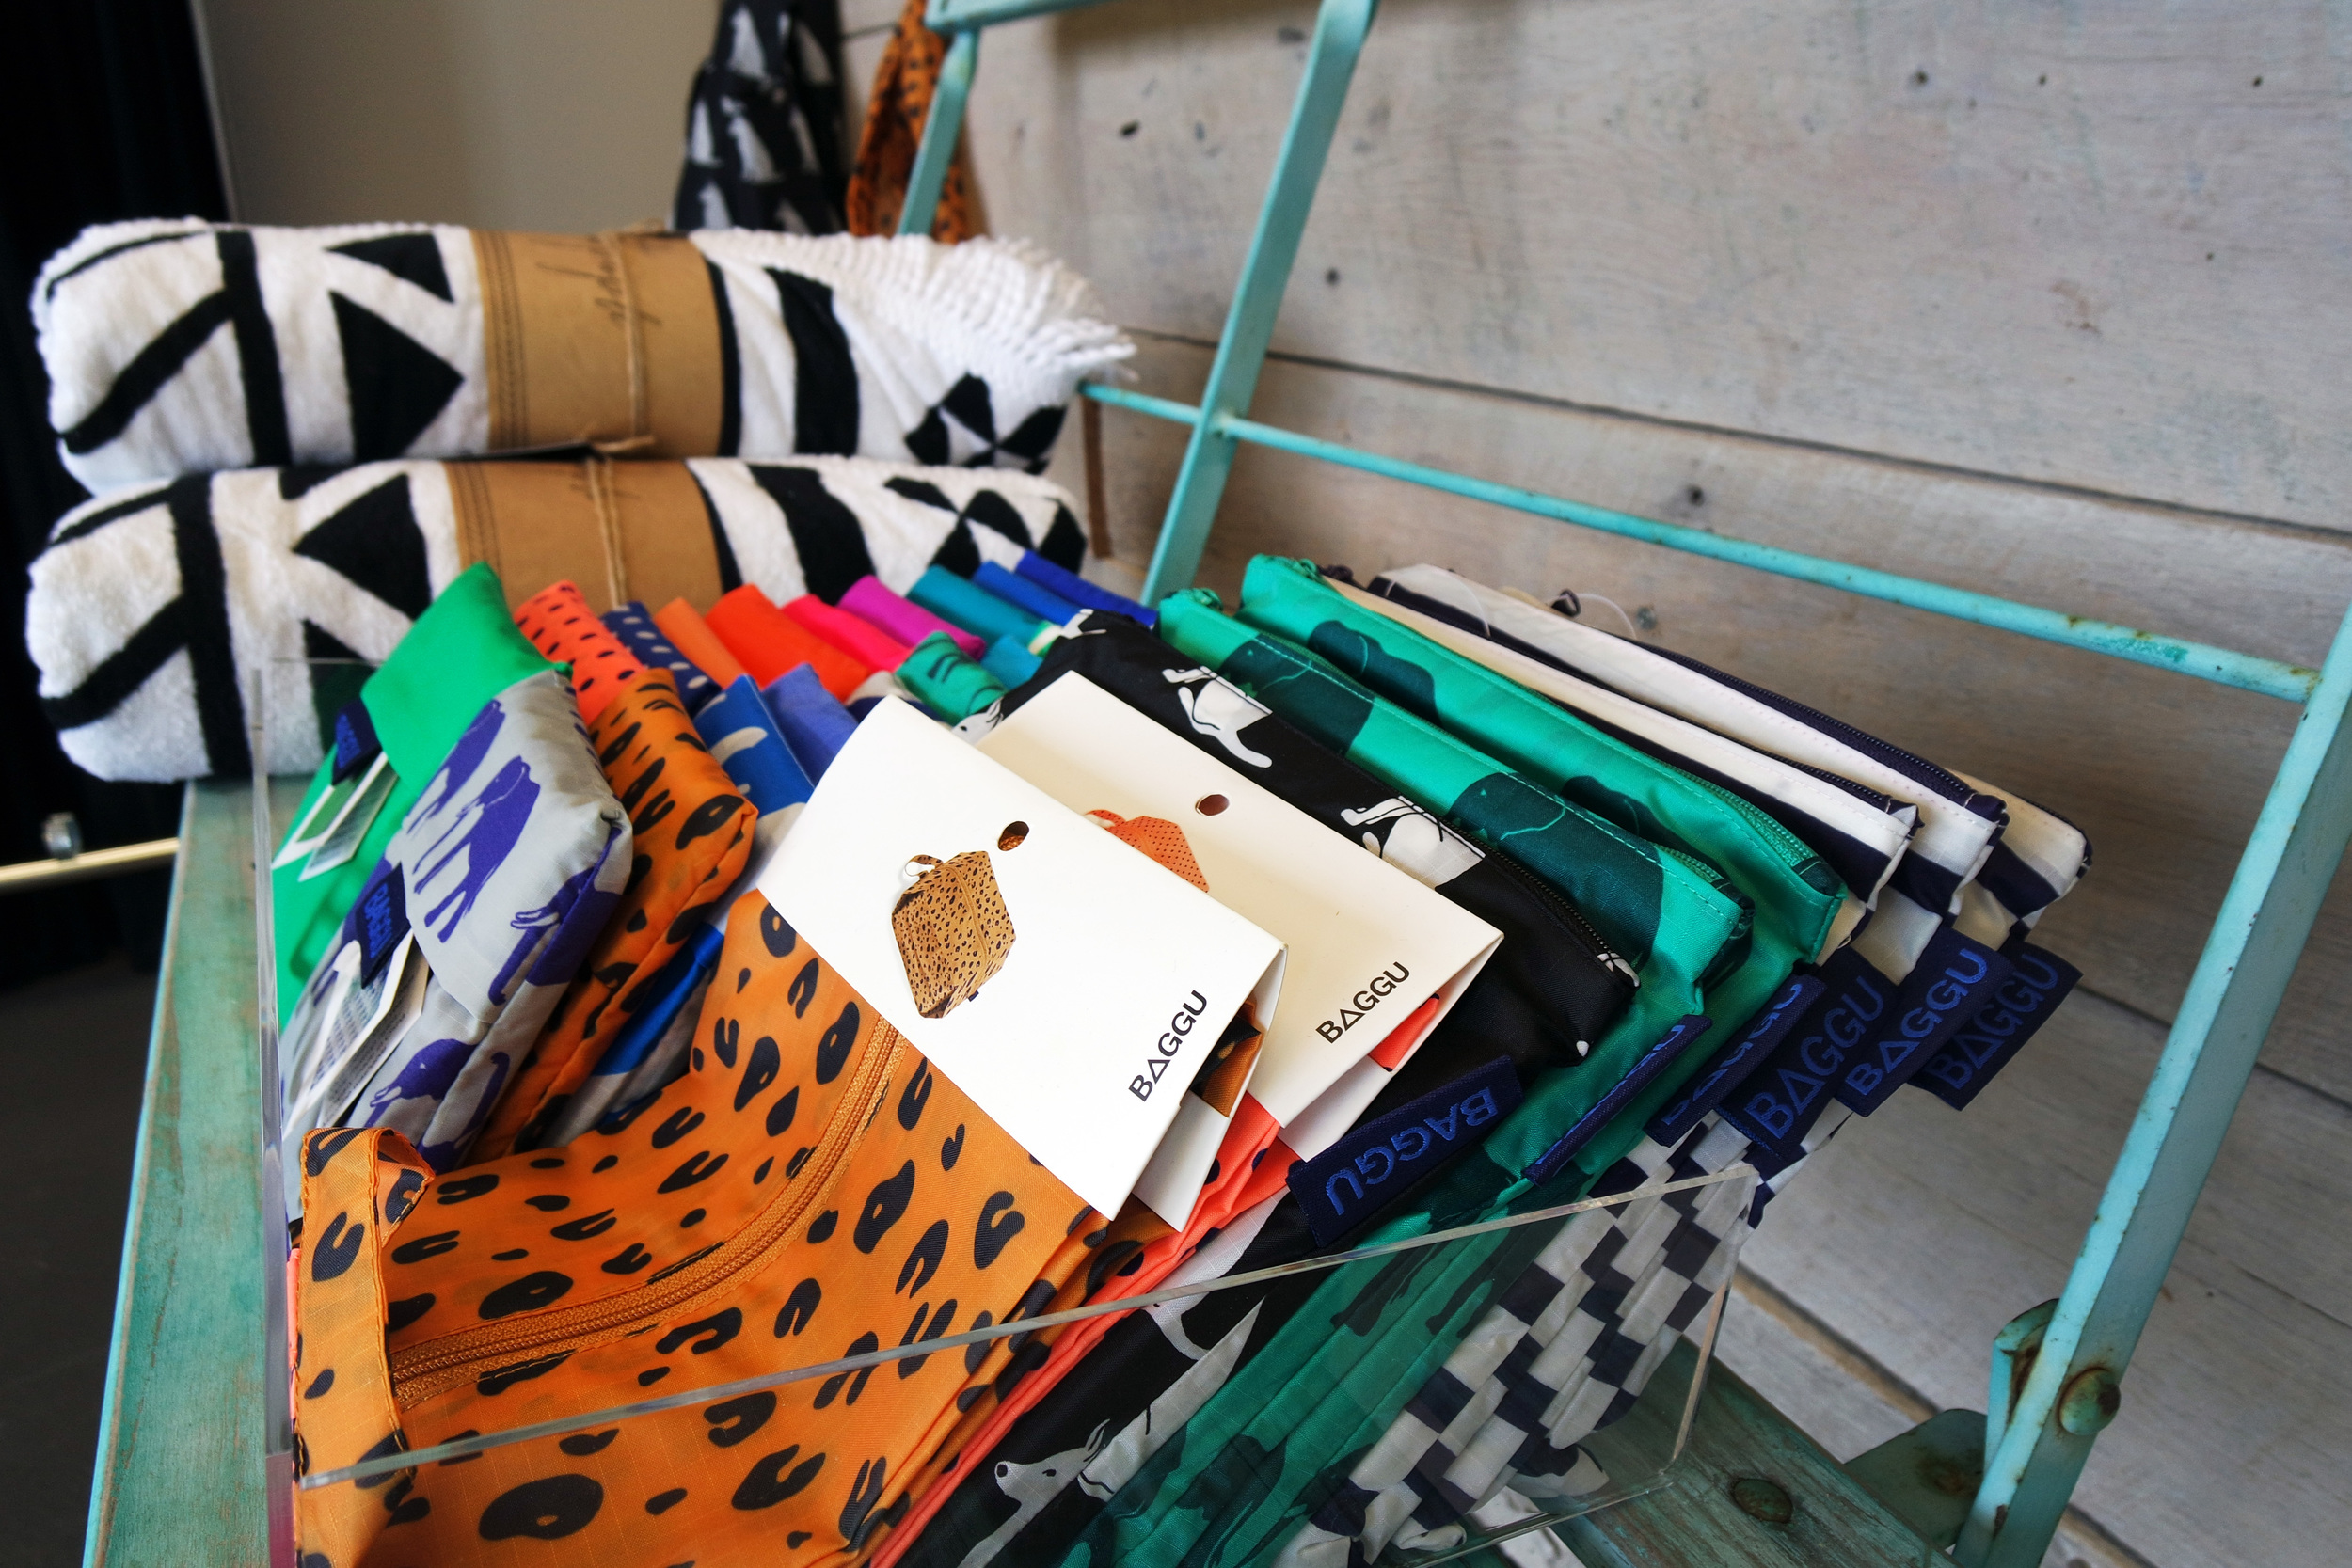 Baggu makes the perfect back to school bags.From pencil pouches to collapsible &reusable totes, we've got you covered!